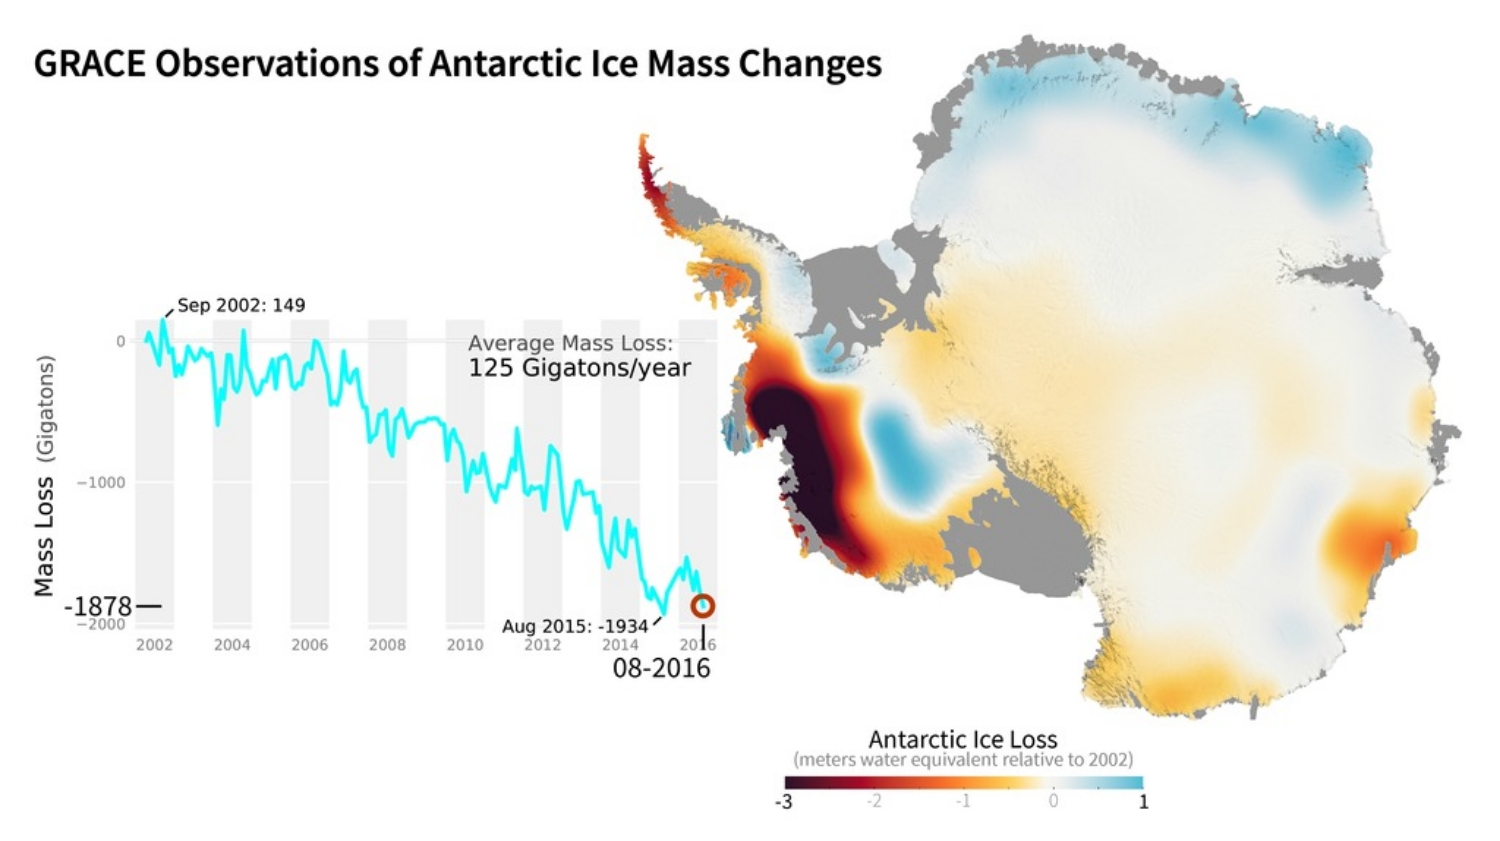 Antarctica ice sheet mass loss with superimposed ice sheet velocity streamlines from 2002-2016.